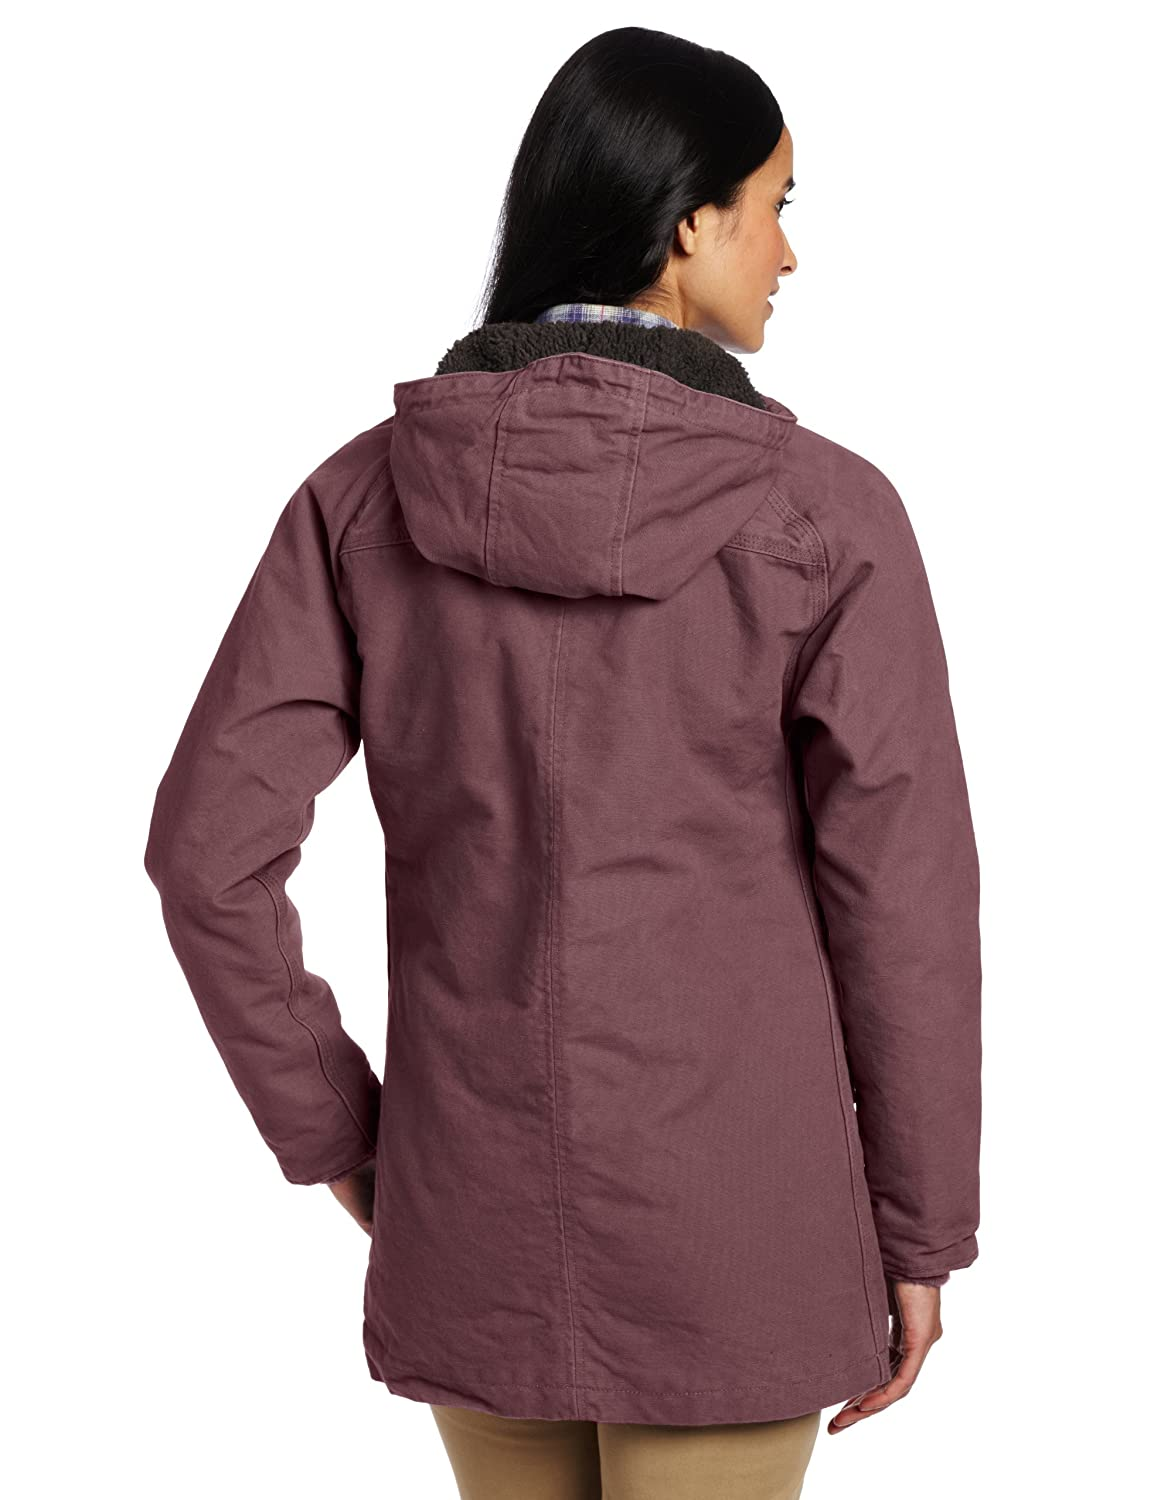 3f3ebe8f3d8 Carhartt Workwear 100045 Women's Sandstone Kenai Parka Dusty Plum S-REG:  Amazon.co.uk: Clothing